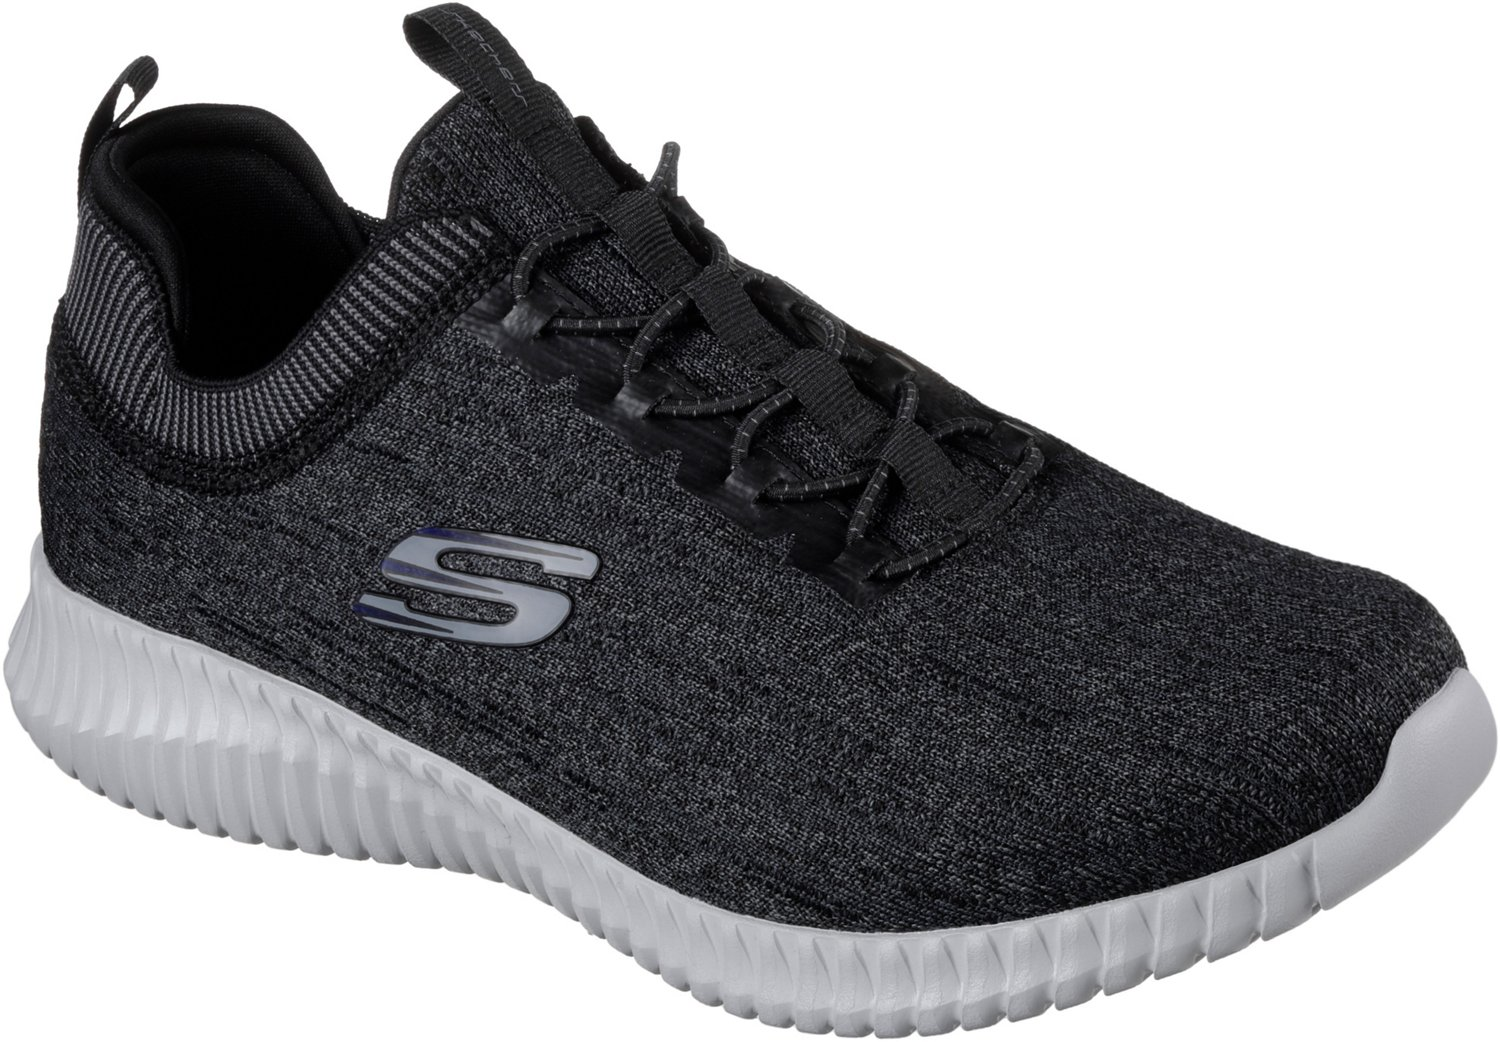 74290e53c Display product reviews for SKECHERS Men s Elite Flex Hartnell Casual  Training Shoes